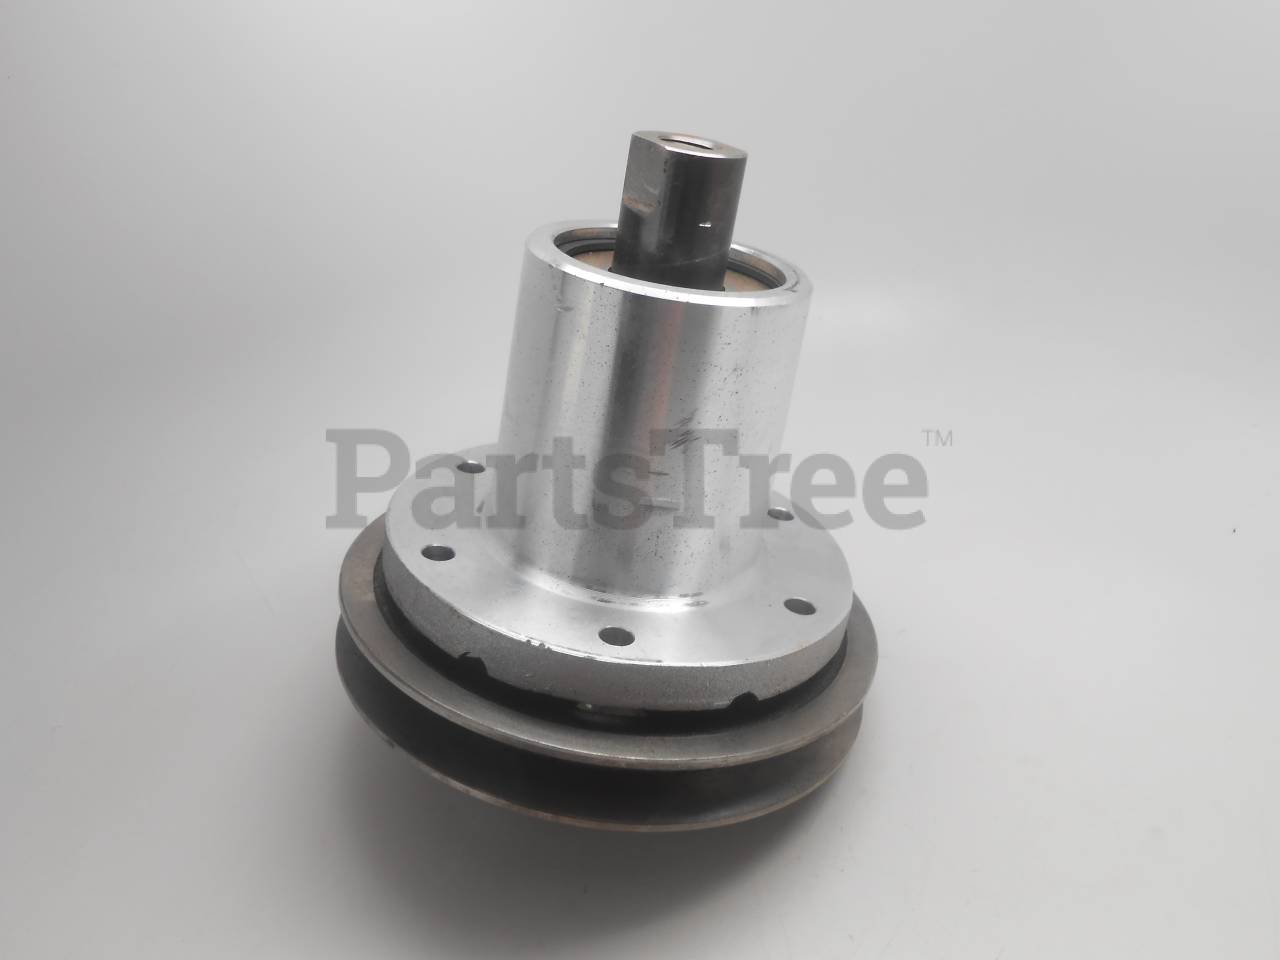 Exmark Part 1 634494 Cutter Housing Assy Partstree Com